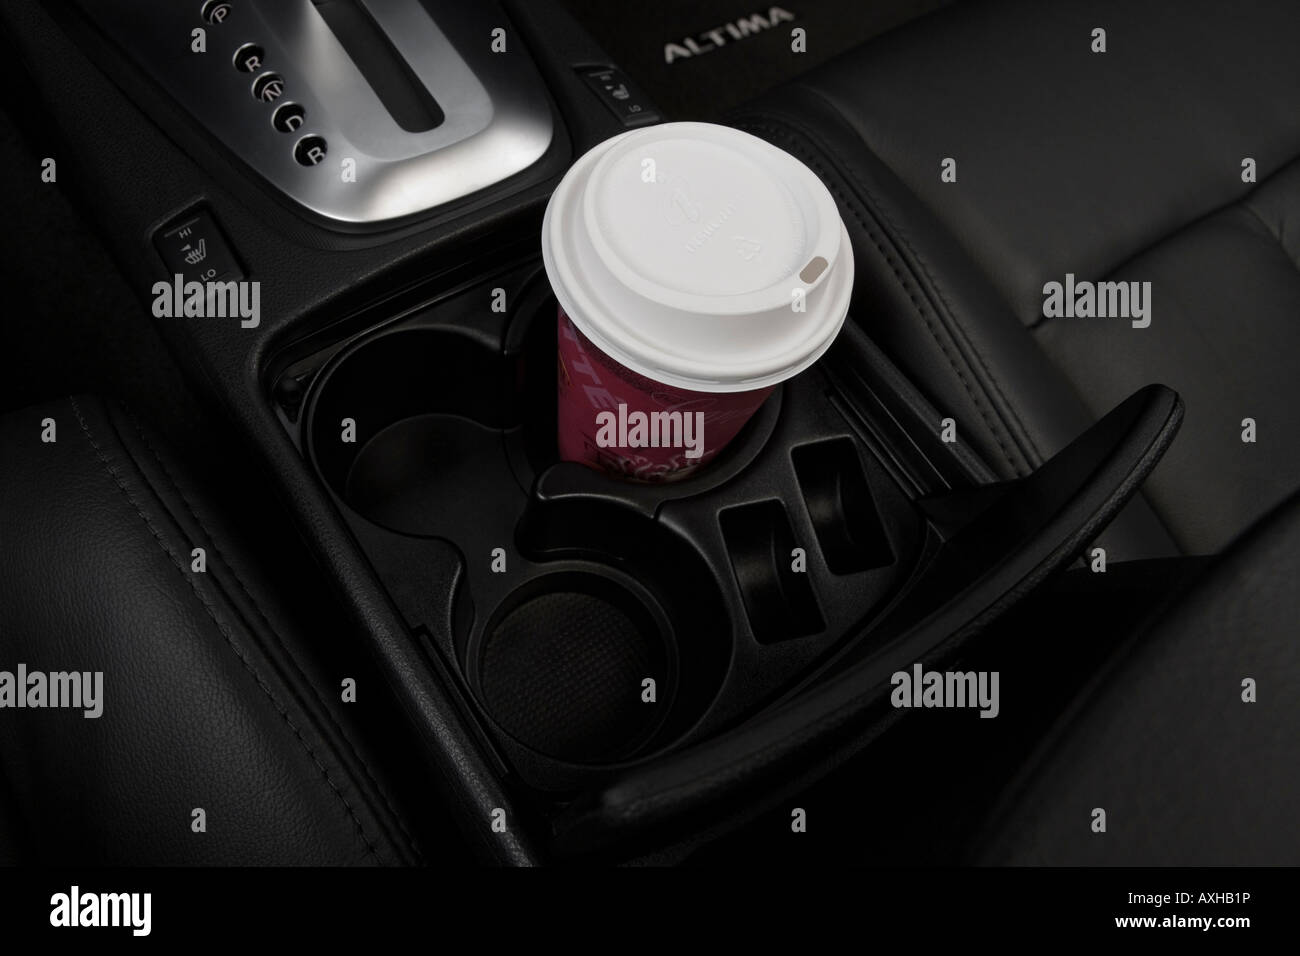 Nissan Altima: Cup holders